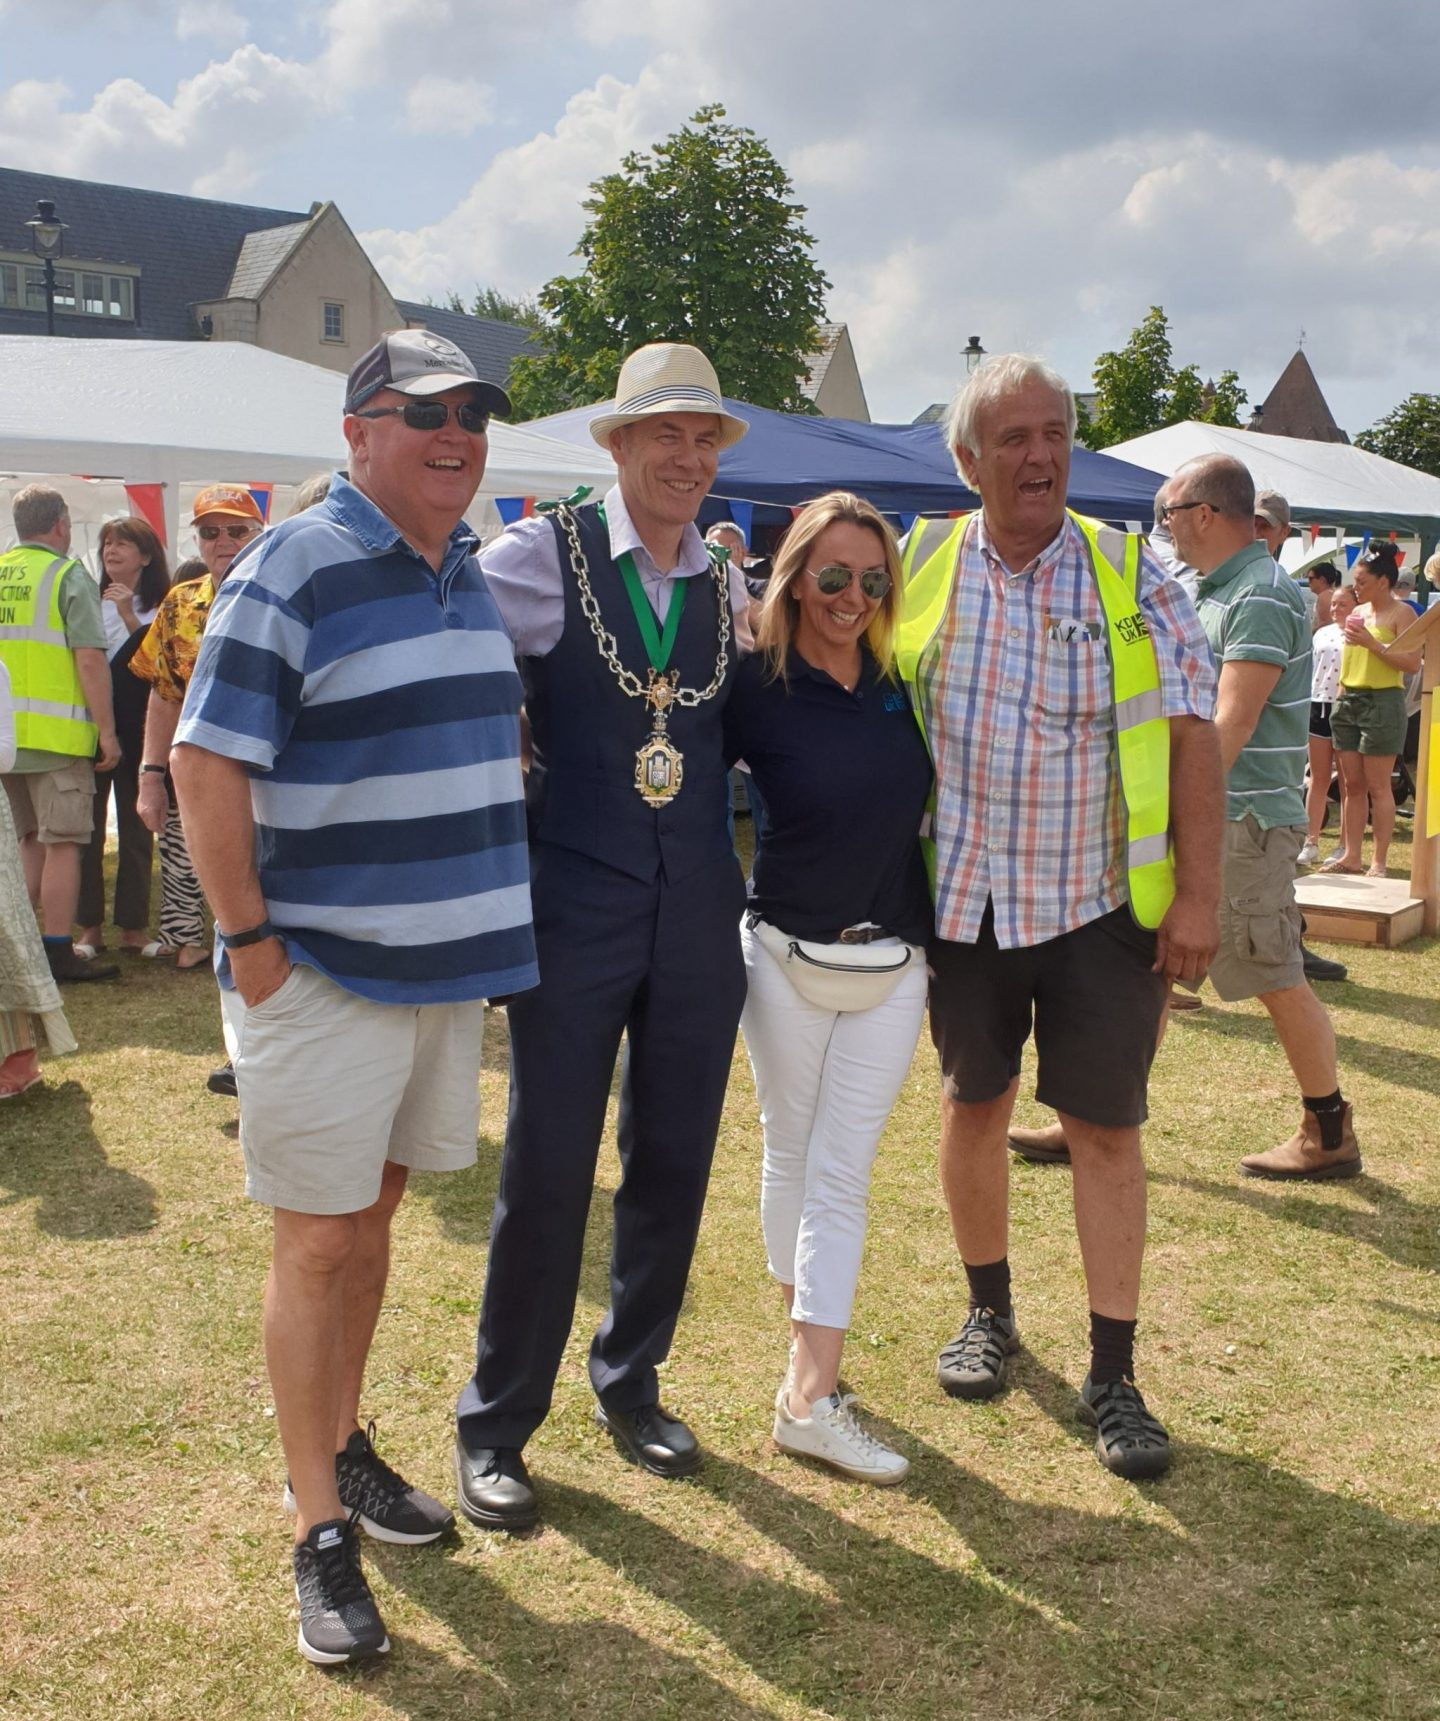 The Mayor of Dorchester gave a helping hand to kick start the Tractor Run